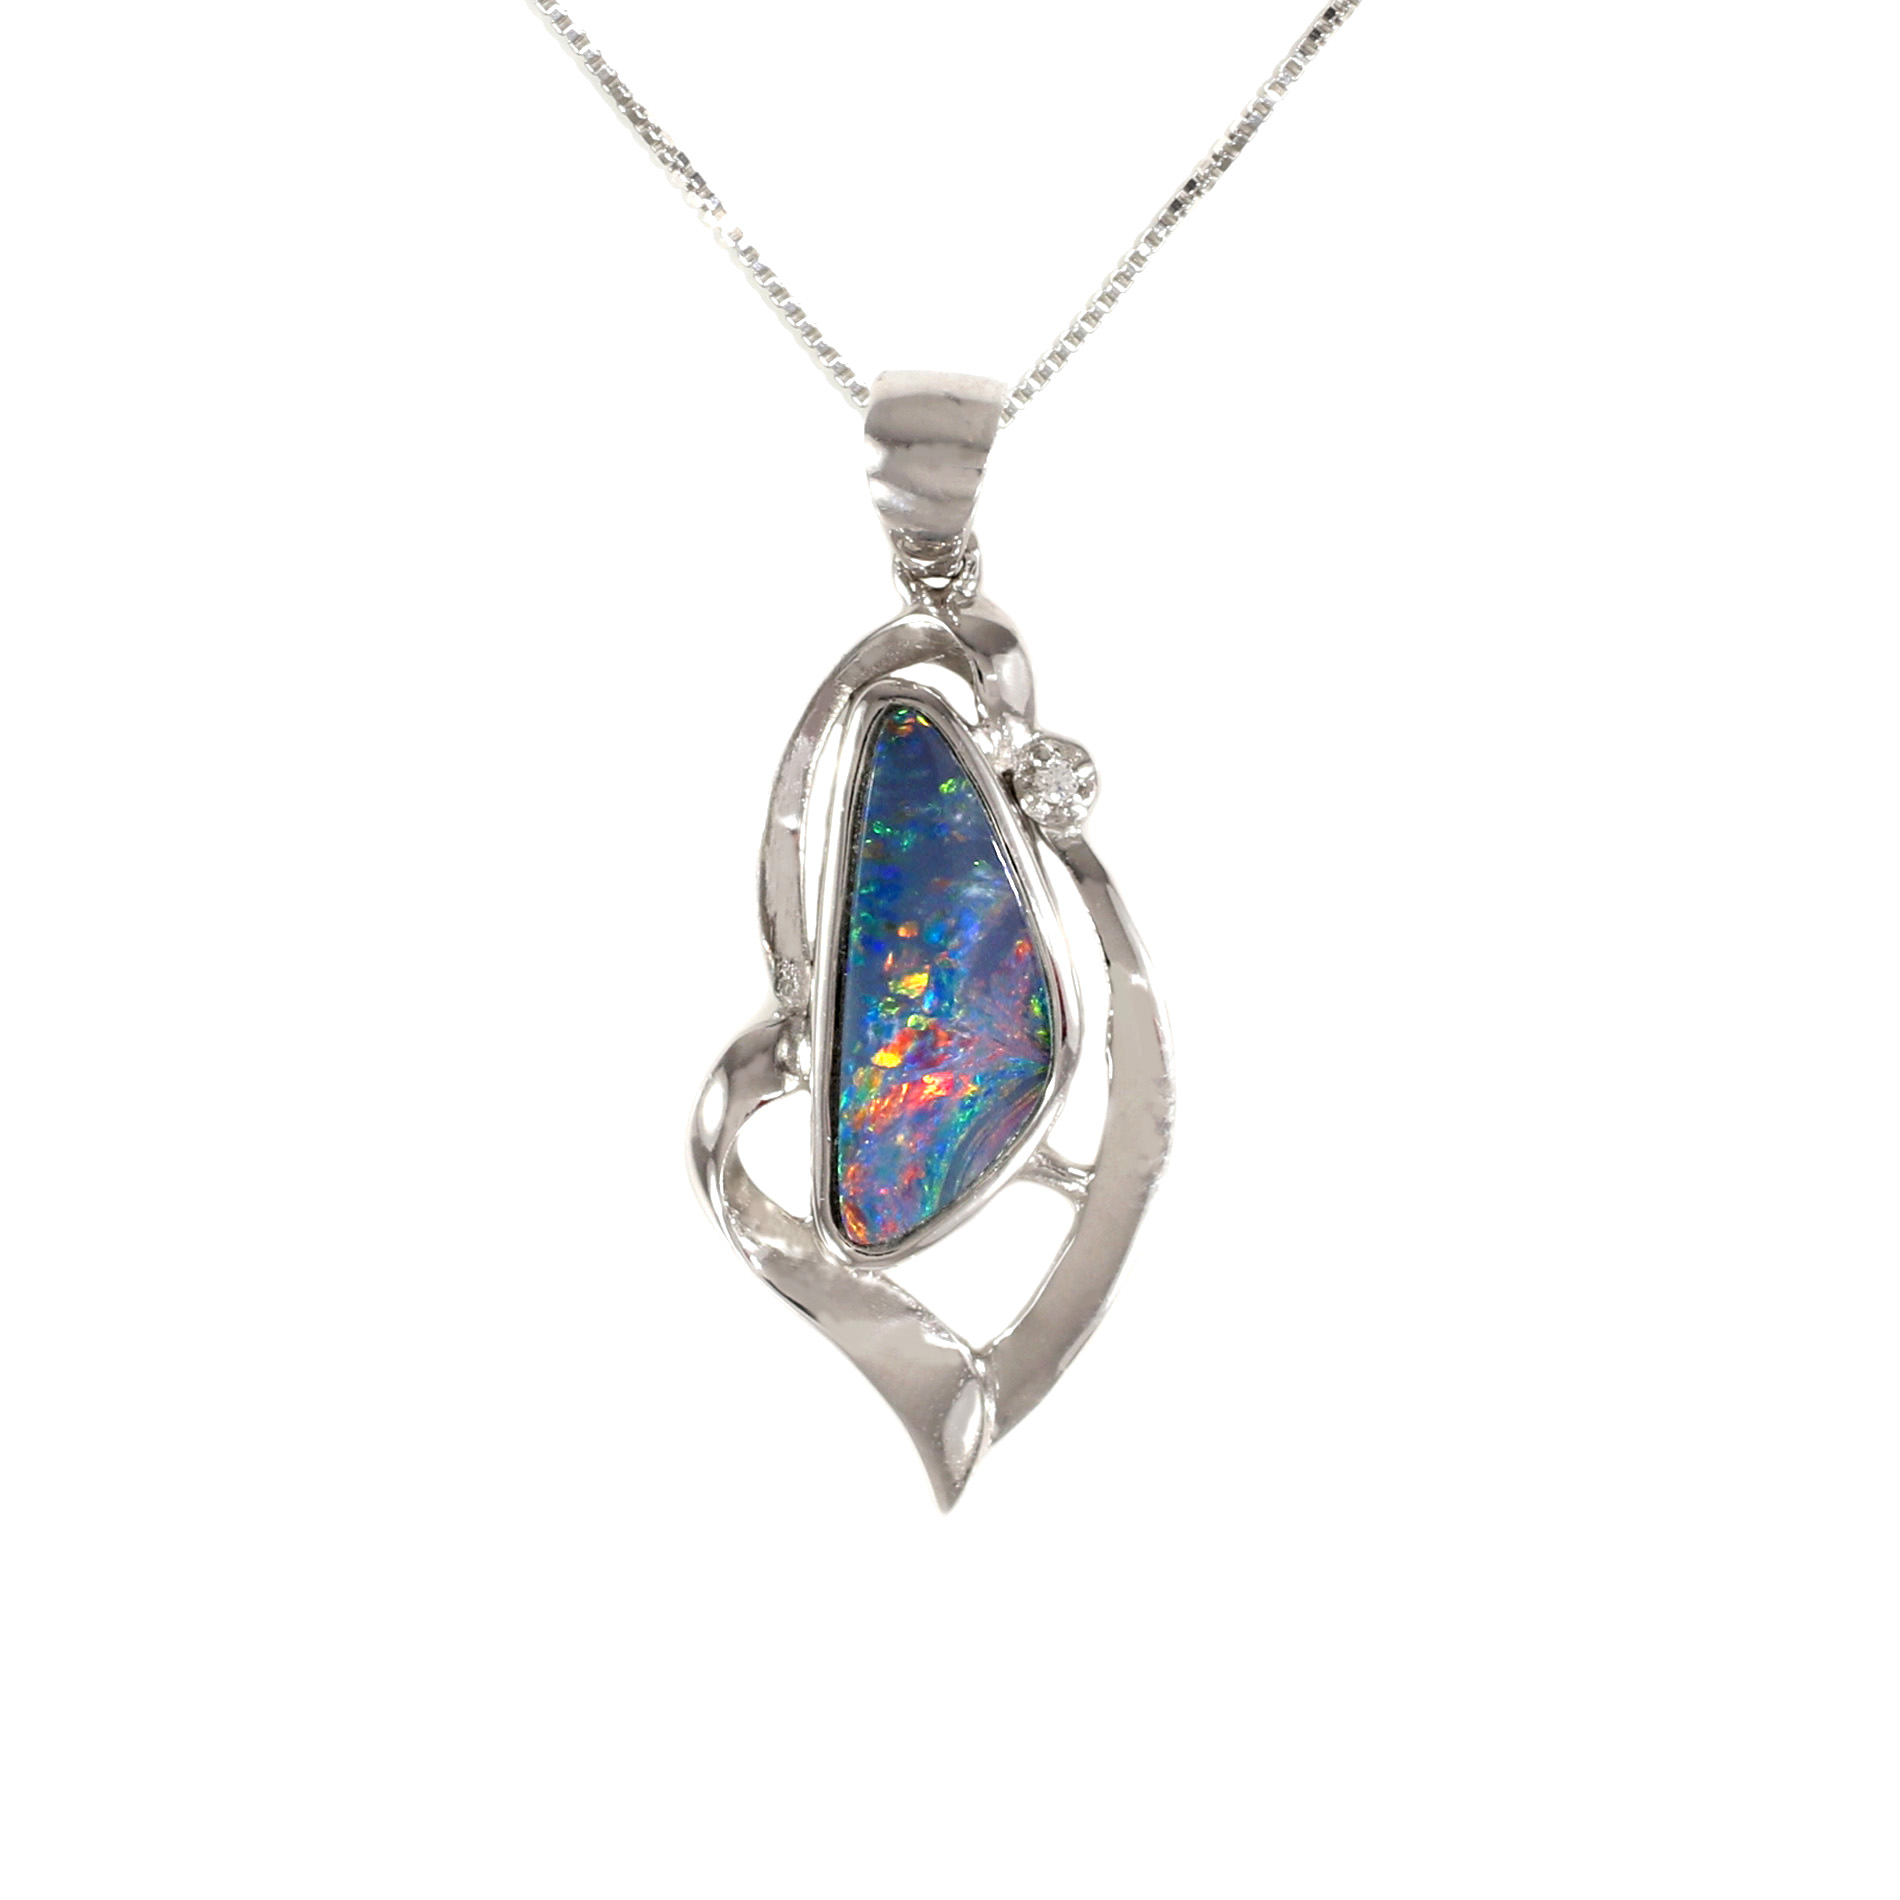 custom lewis jewelry opal necklaces img original boulder j pendant jlj store australian and